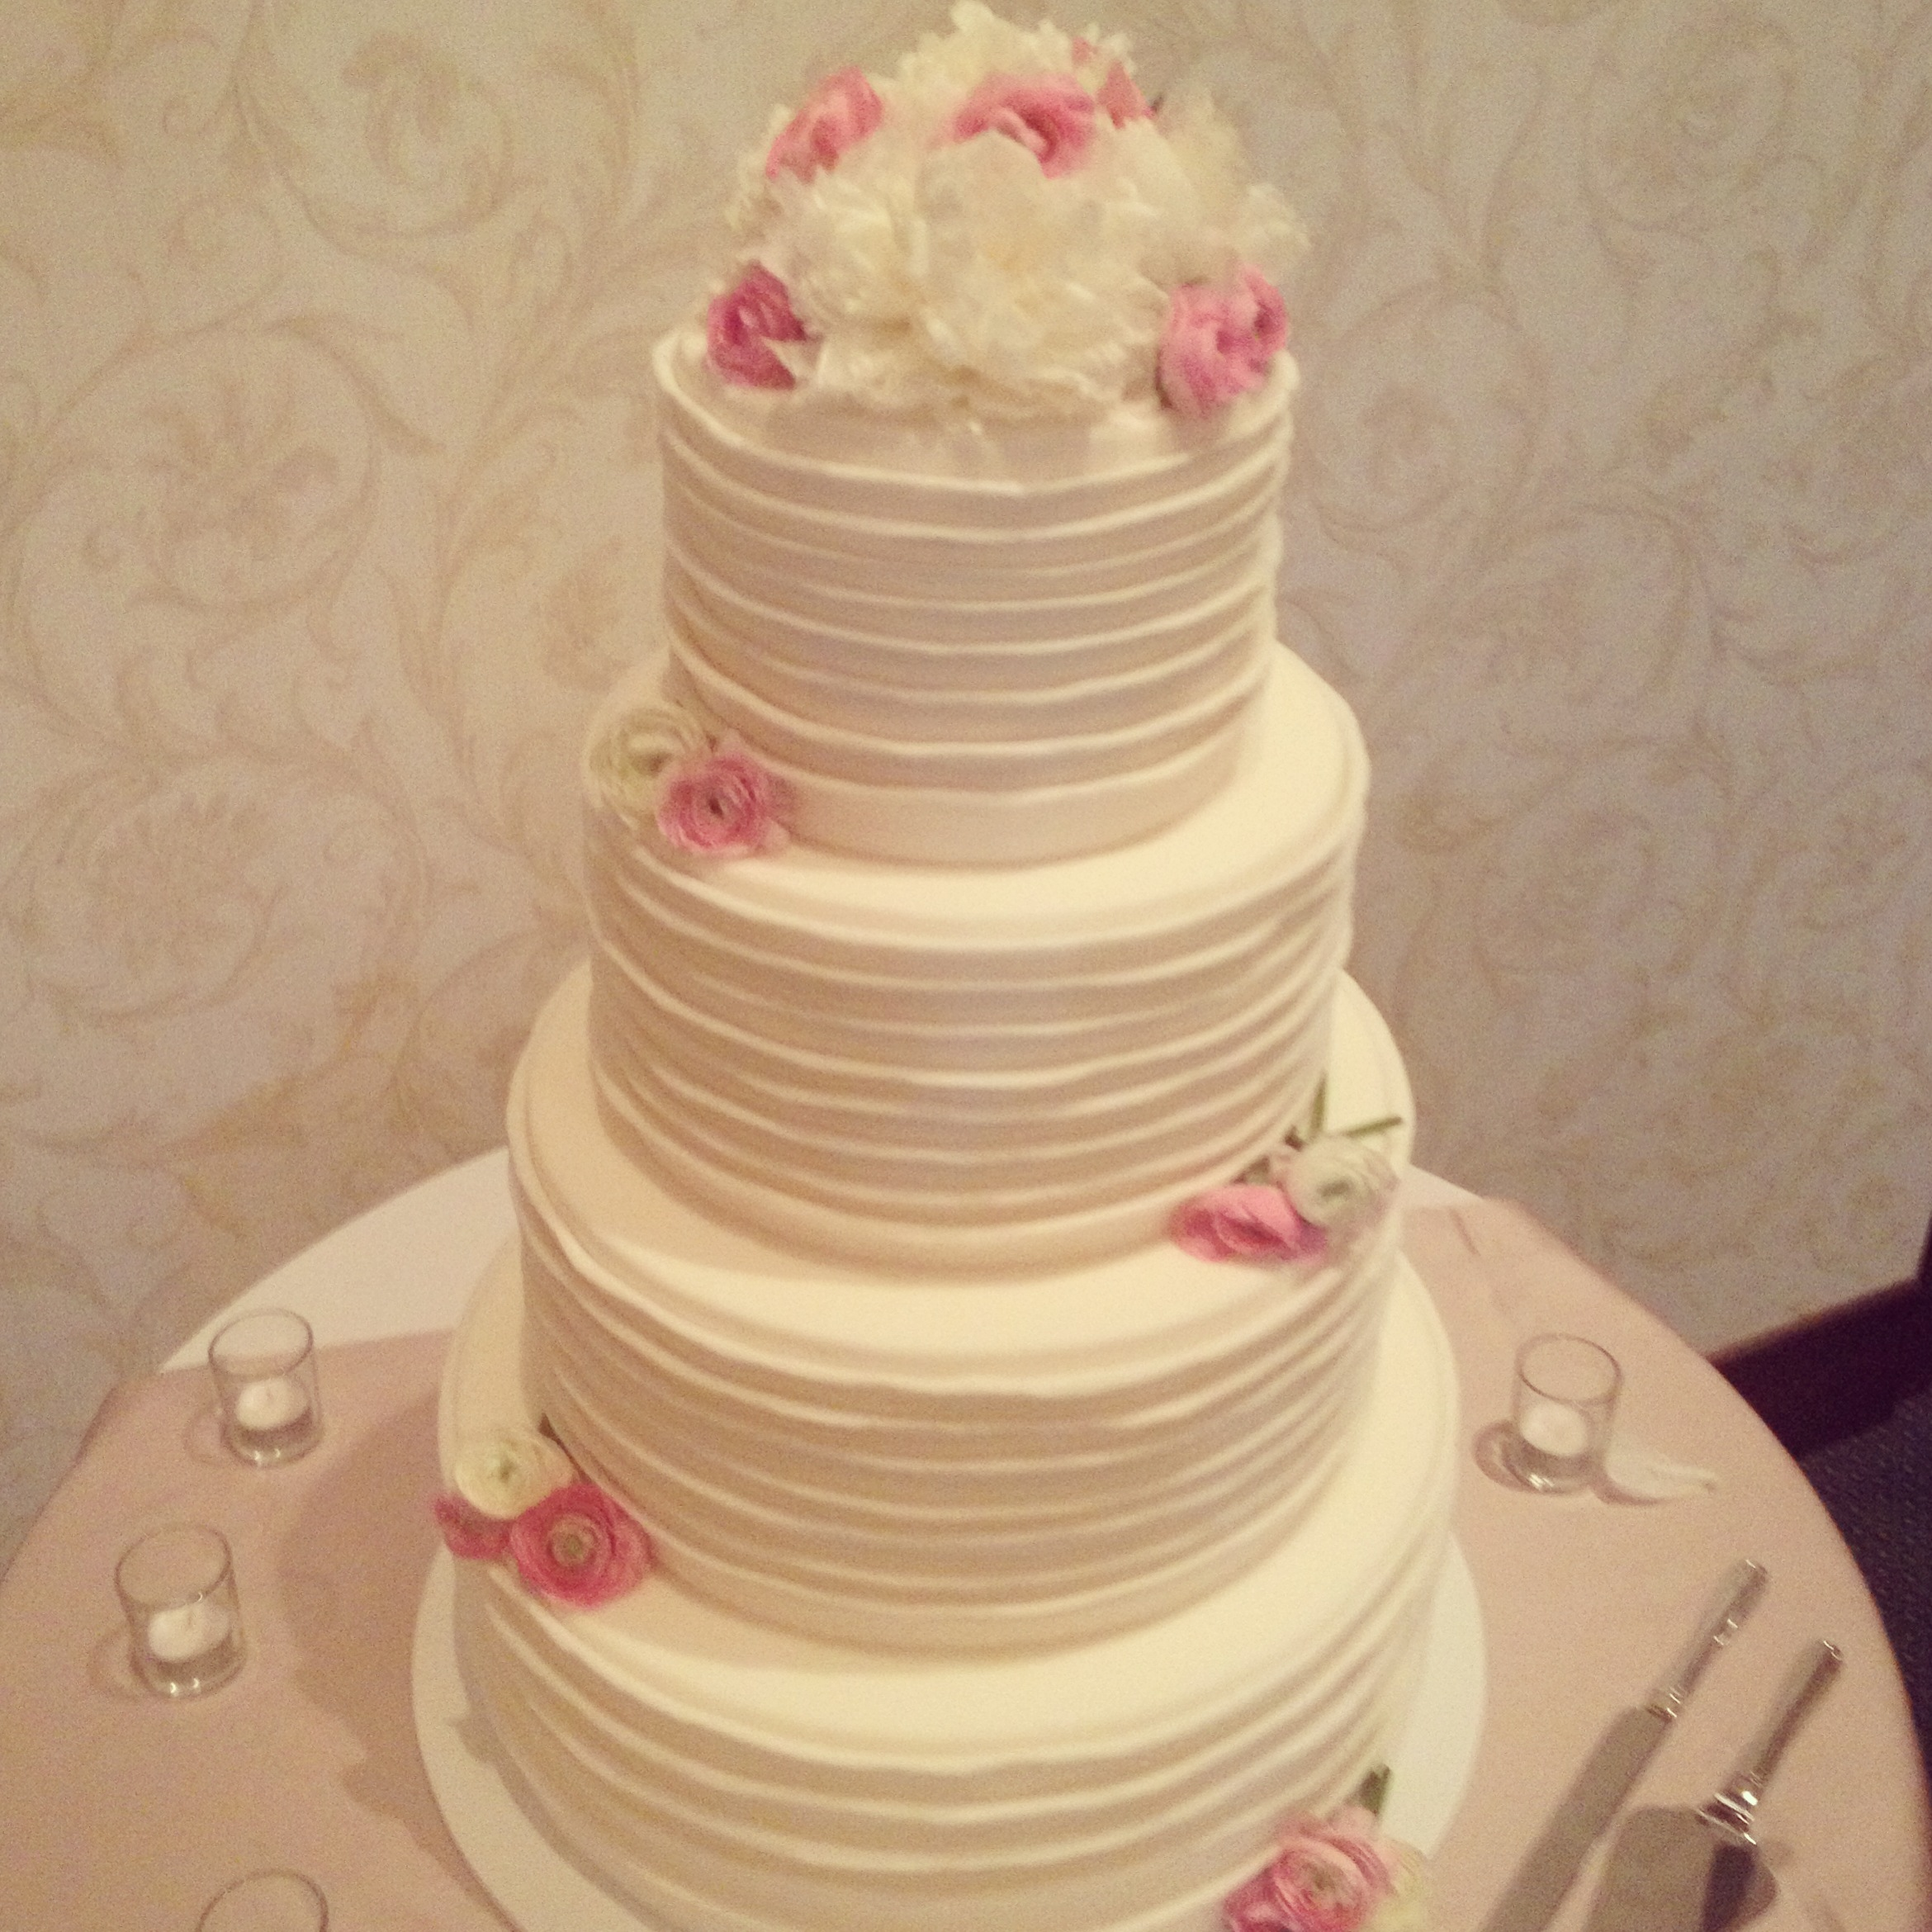 Beautiful wedding cakes for young: Most beautiful wedding cakes ever